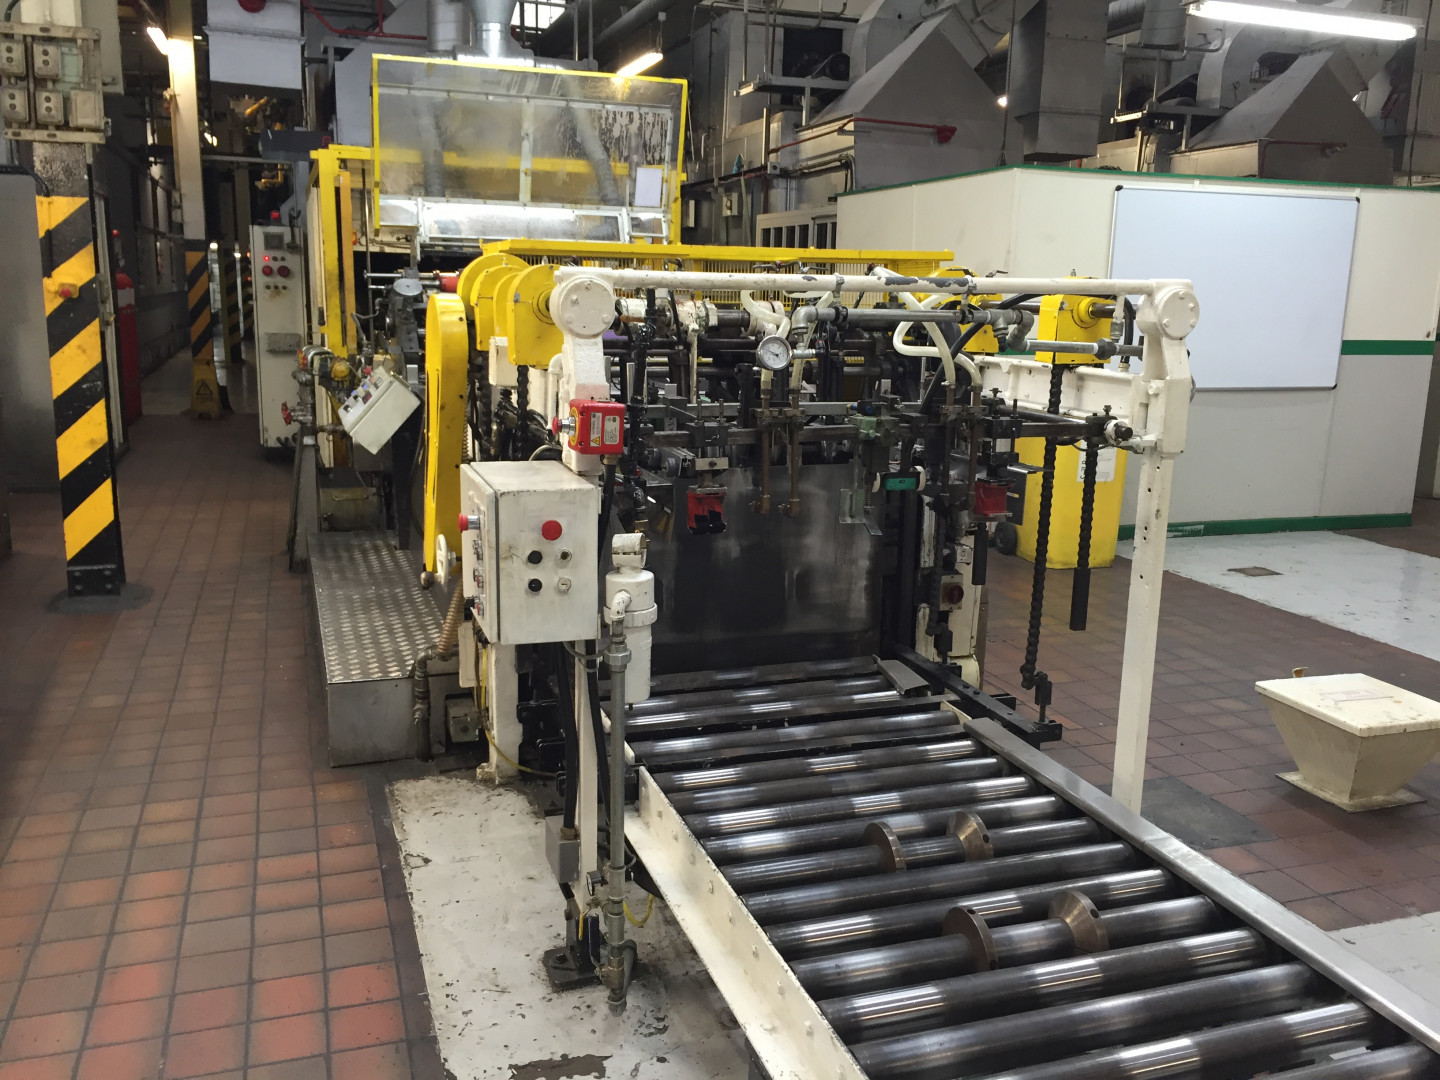 LA03 - roller conveyor and feeder